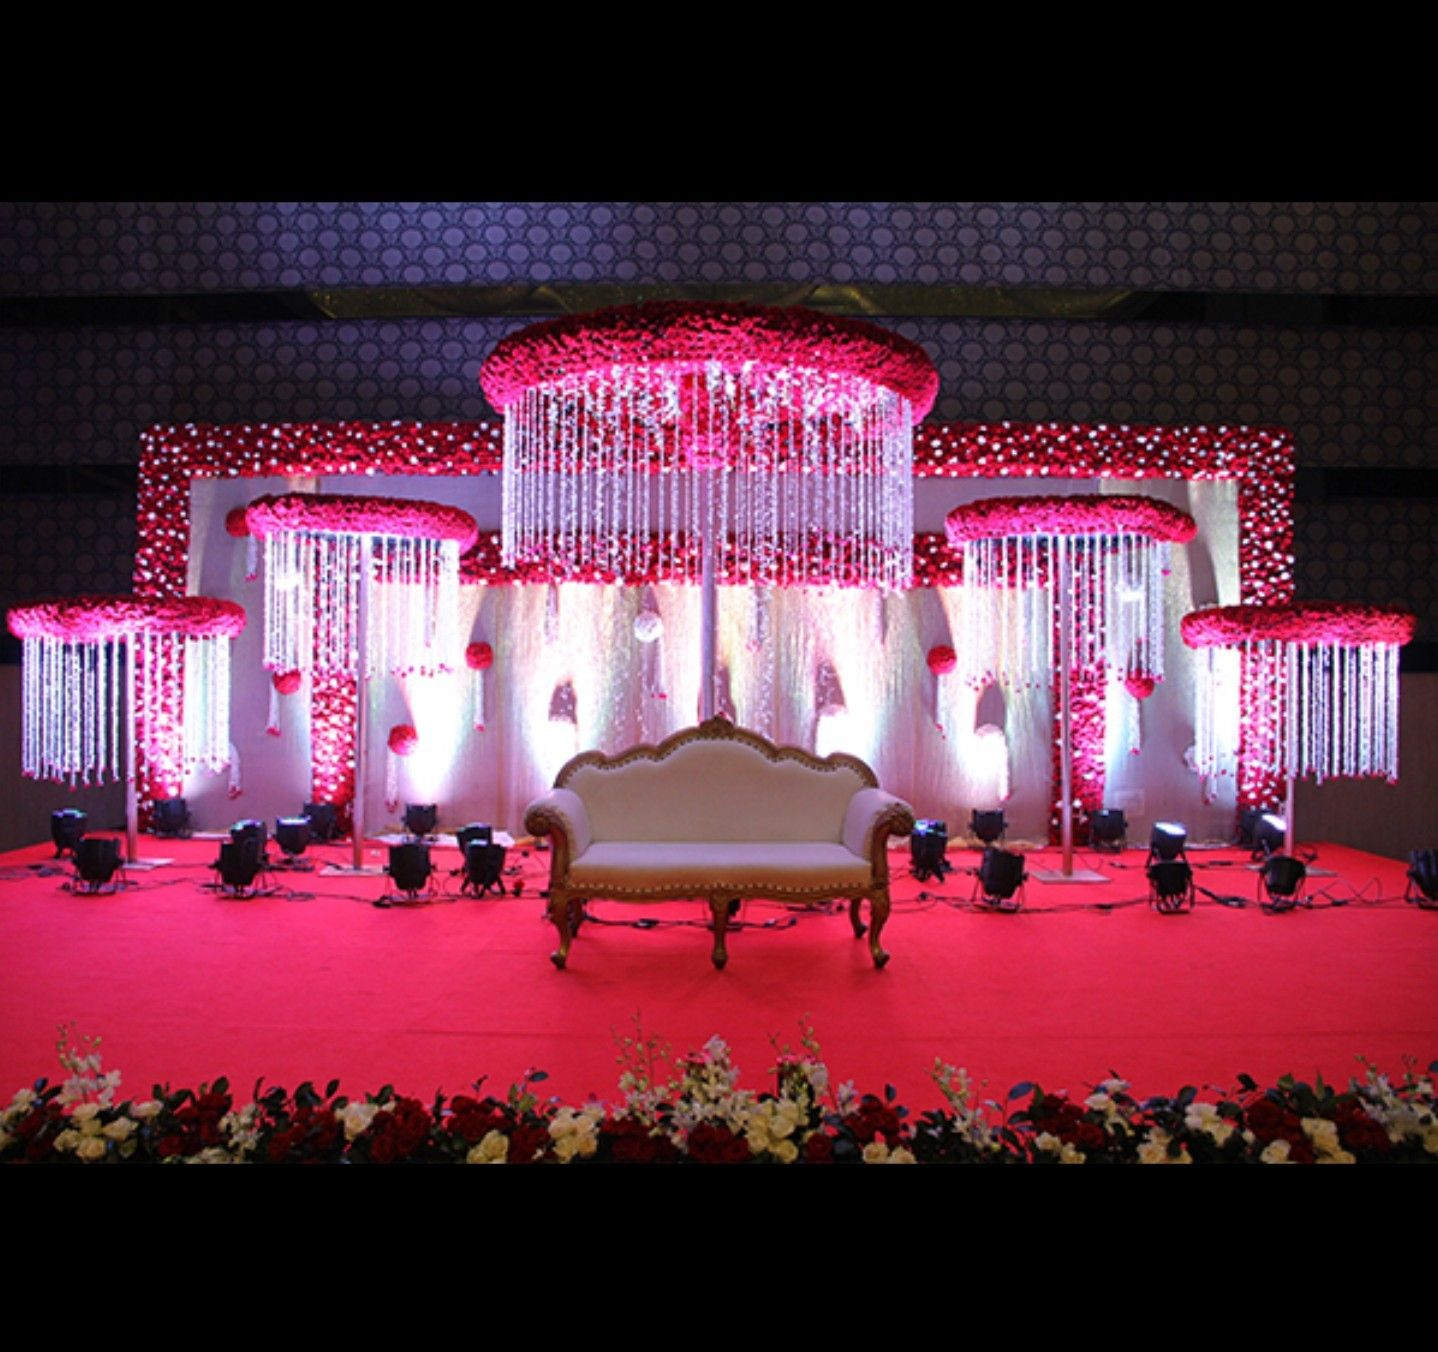 Wedding stage decor | south Indian wedding decor | Pinterest ... for Indian Wedding Light Decoration  10lpwja